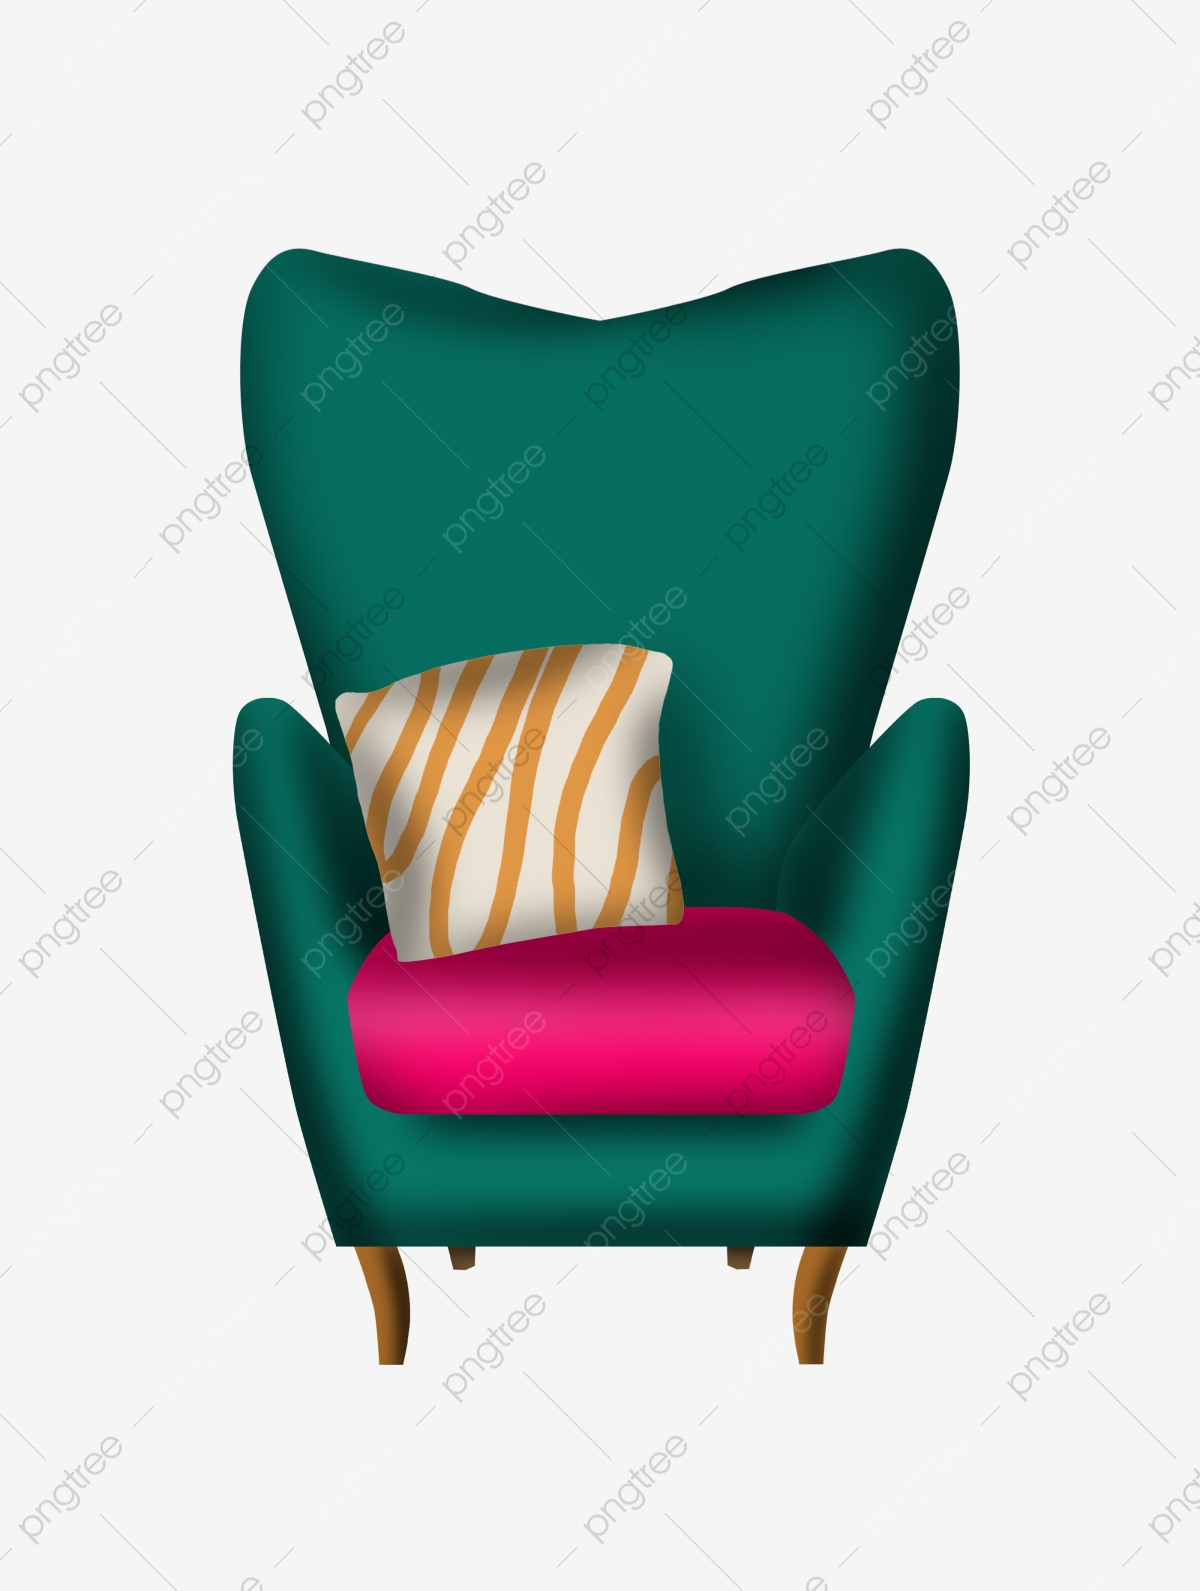 Furniture Chair Sofa Illustration Cushion Sofa Chair Png